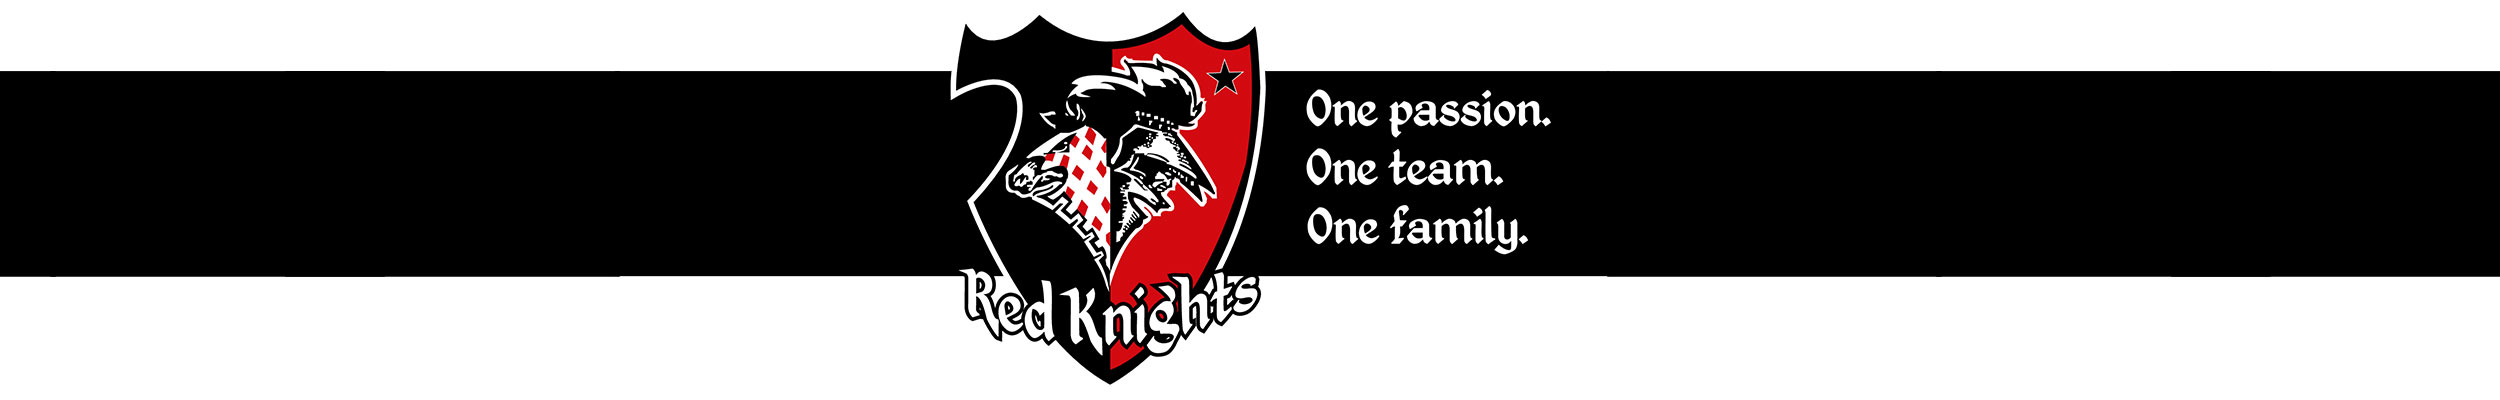 Leitbild One passion. One team. One family.